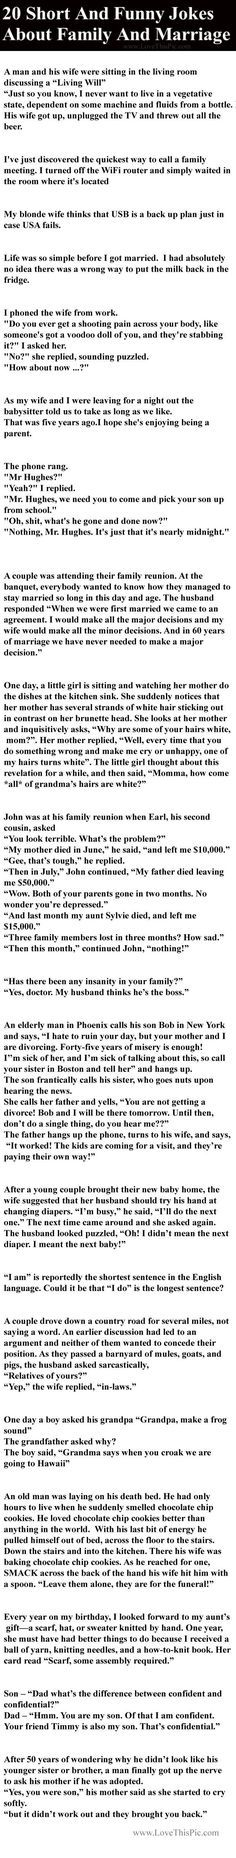 20 Short And Funny Jokes About Family And Marriage funny family jokes story lol funny quote funny quotes funny sayings joke hilarious humor stories marriage humor funny jokes